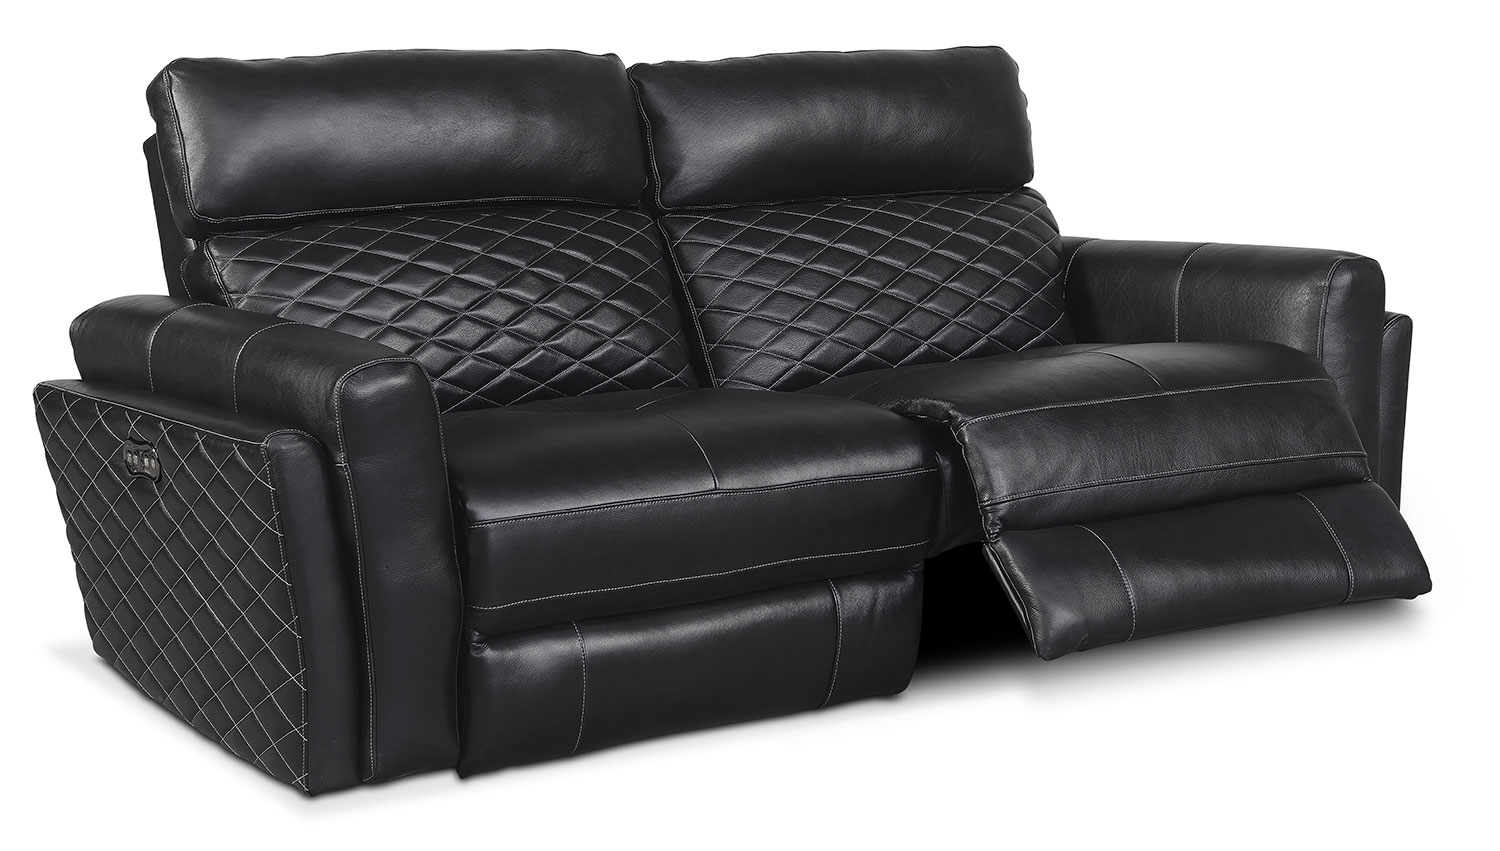 Catalina 2 Piece Reclining Sofa By Apt 1710